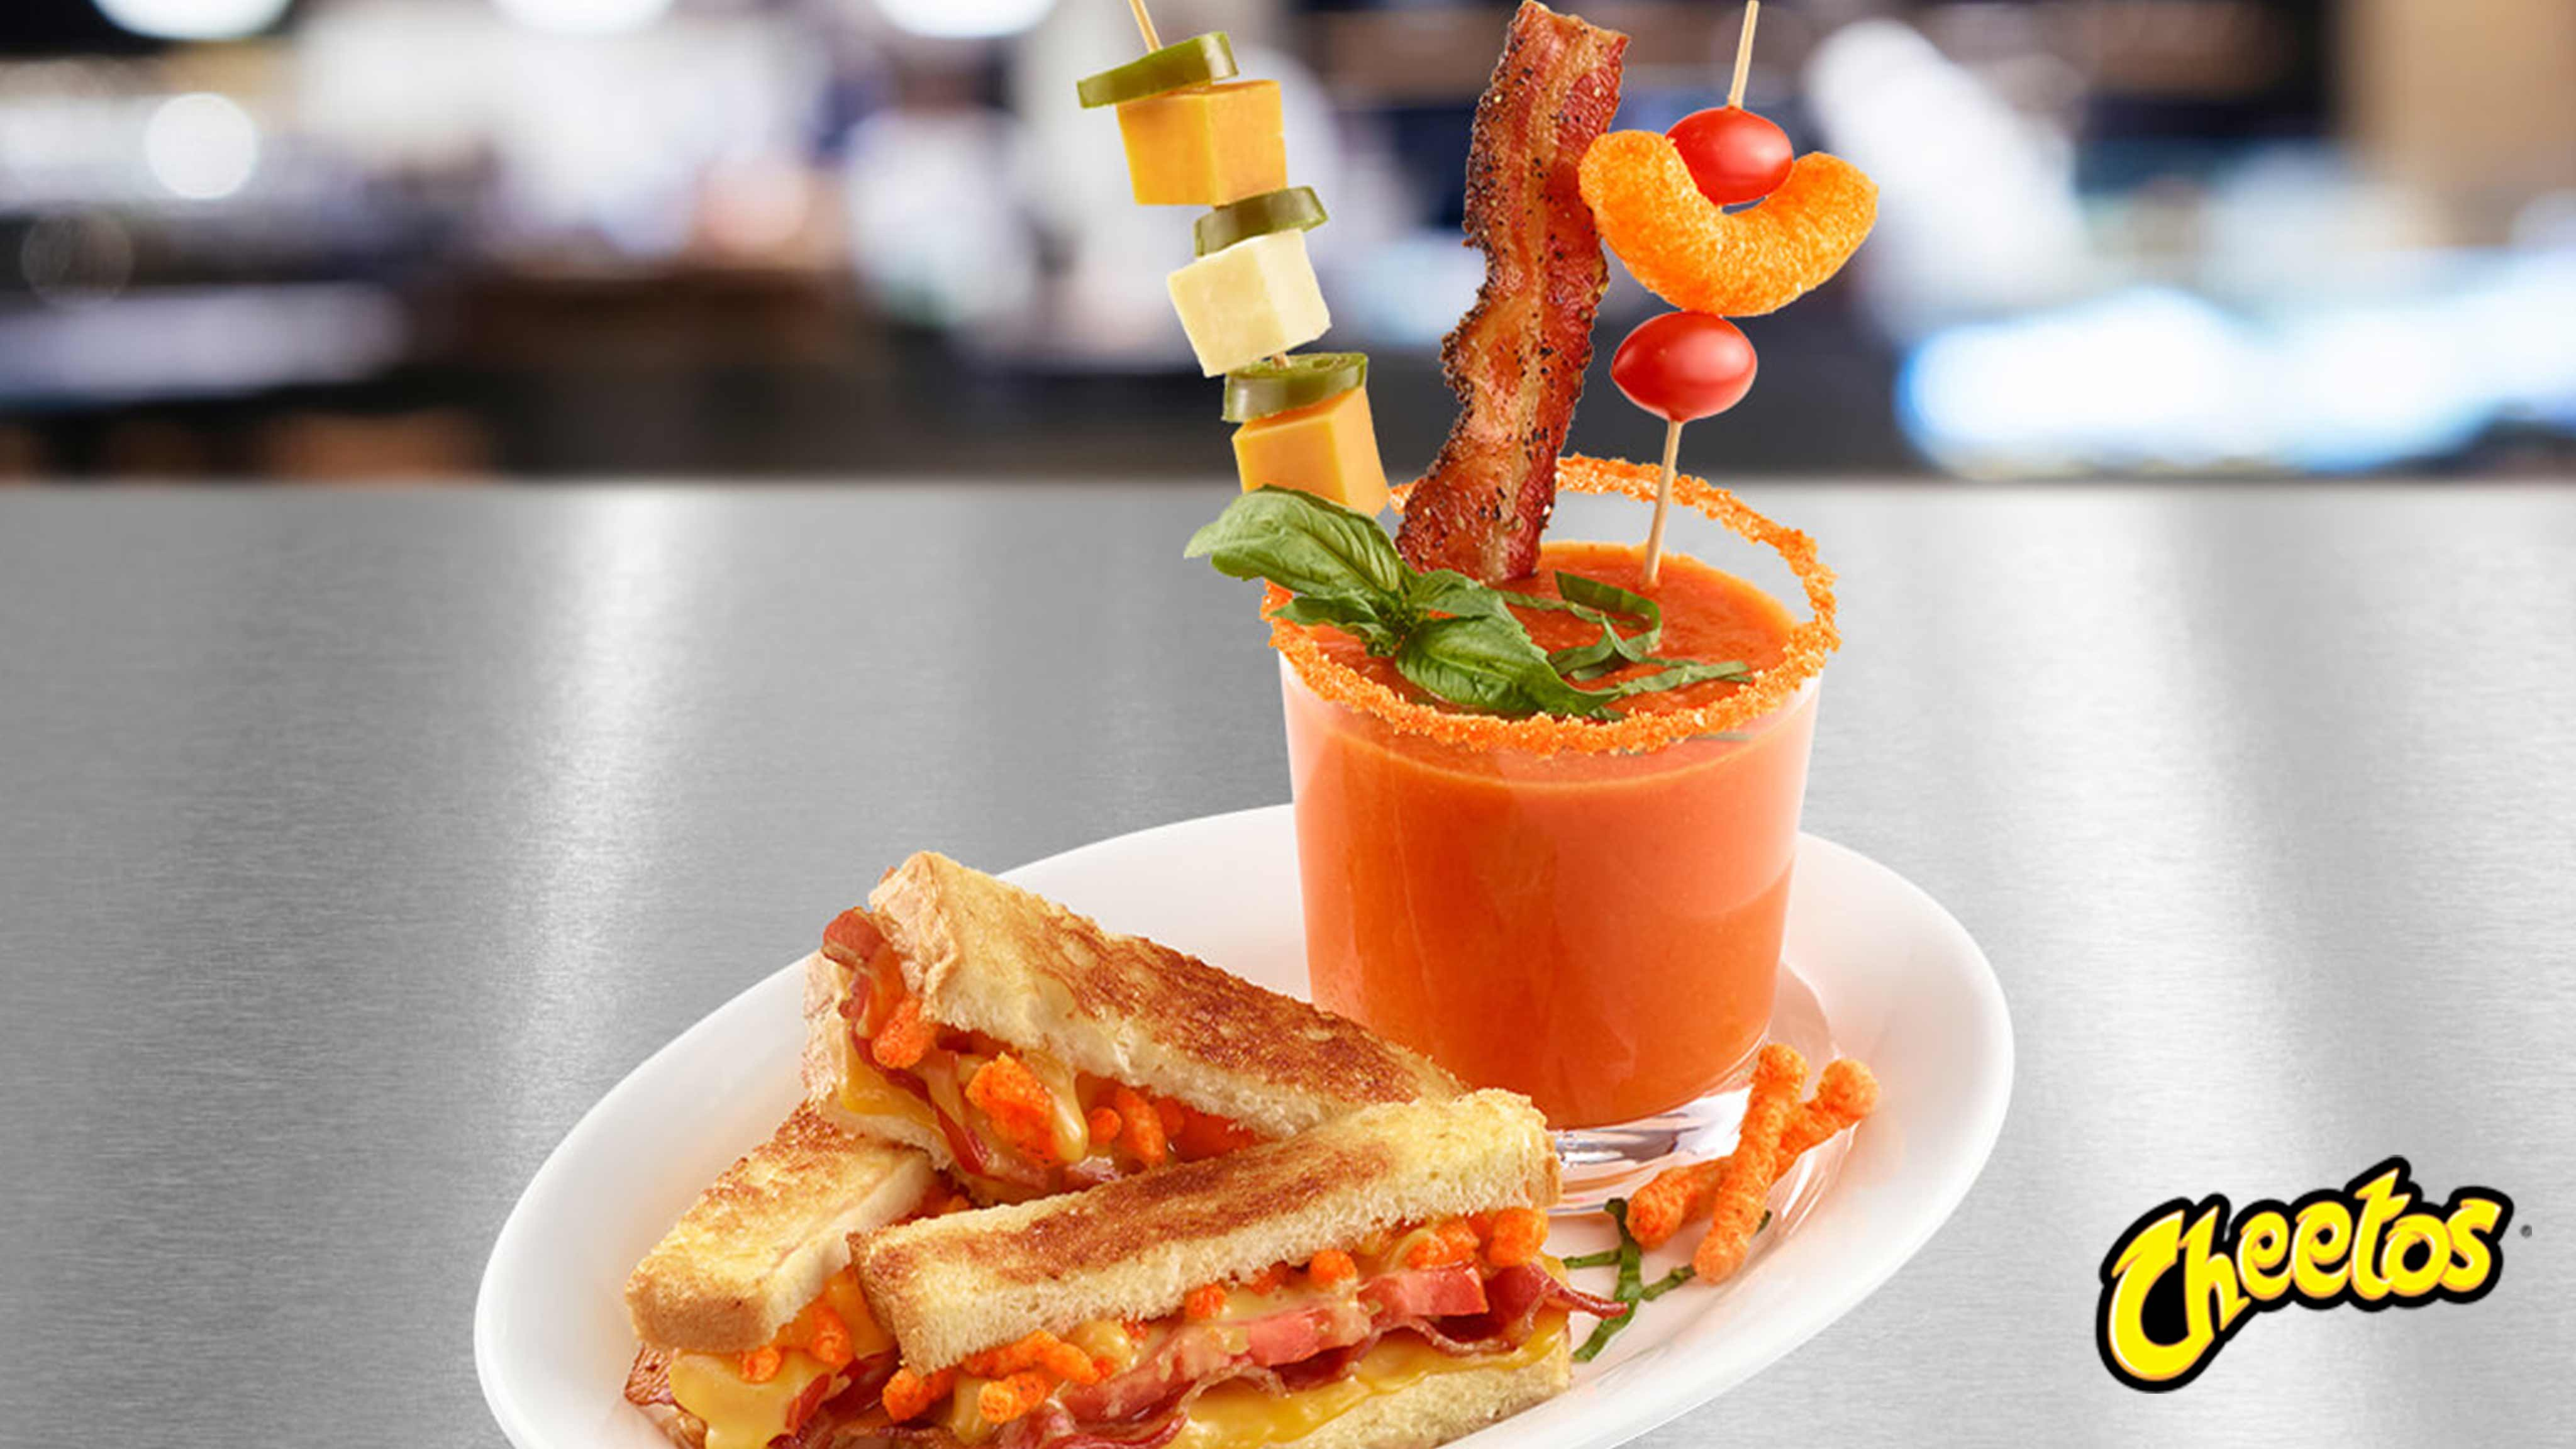 Image for Recipe CHEETOS Grilled Cheese plus Tomato Soup